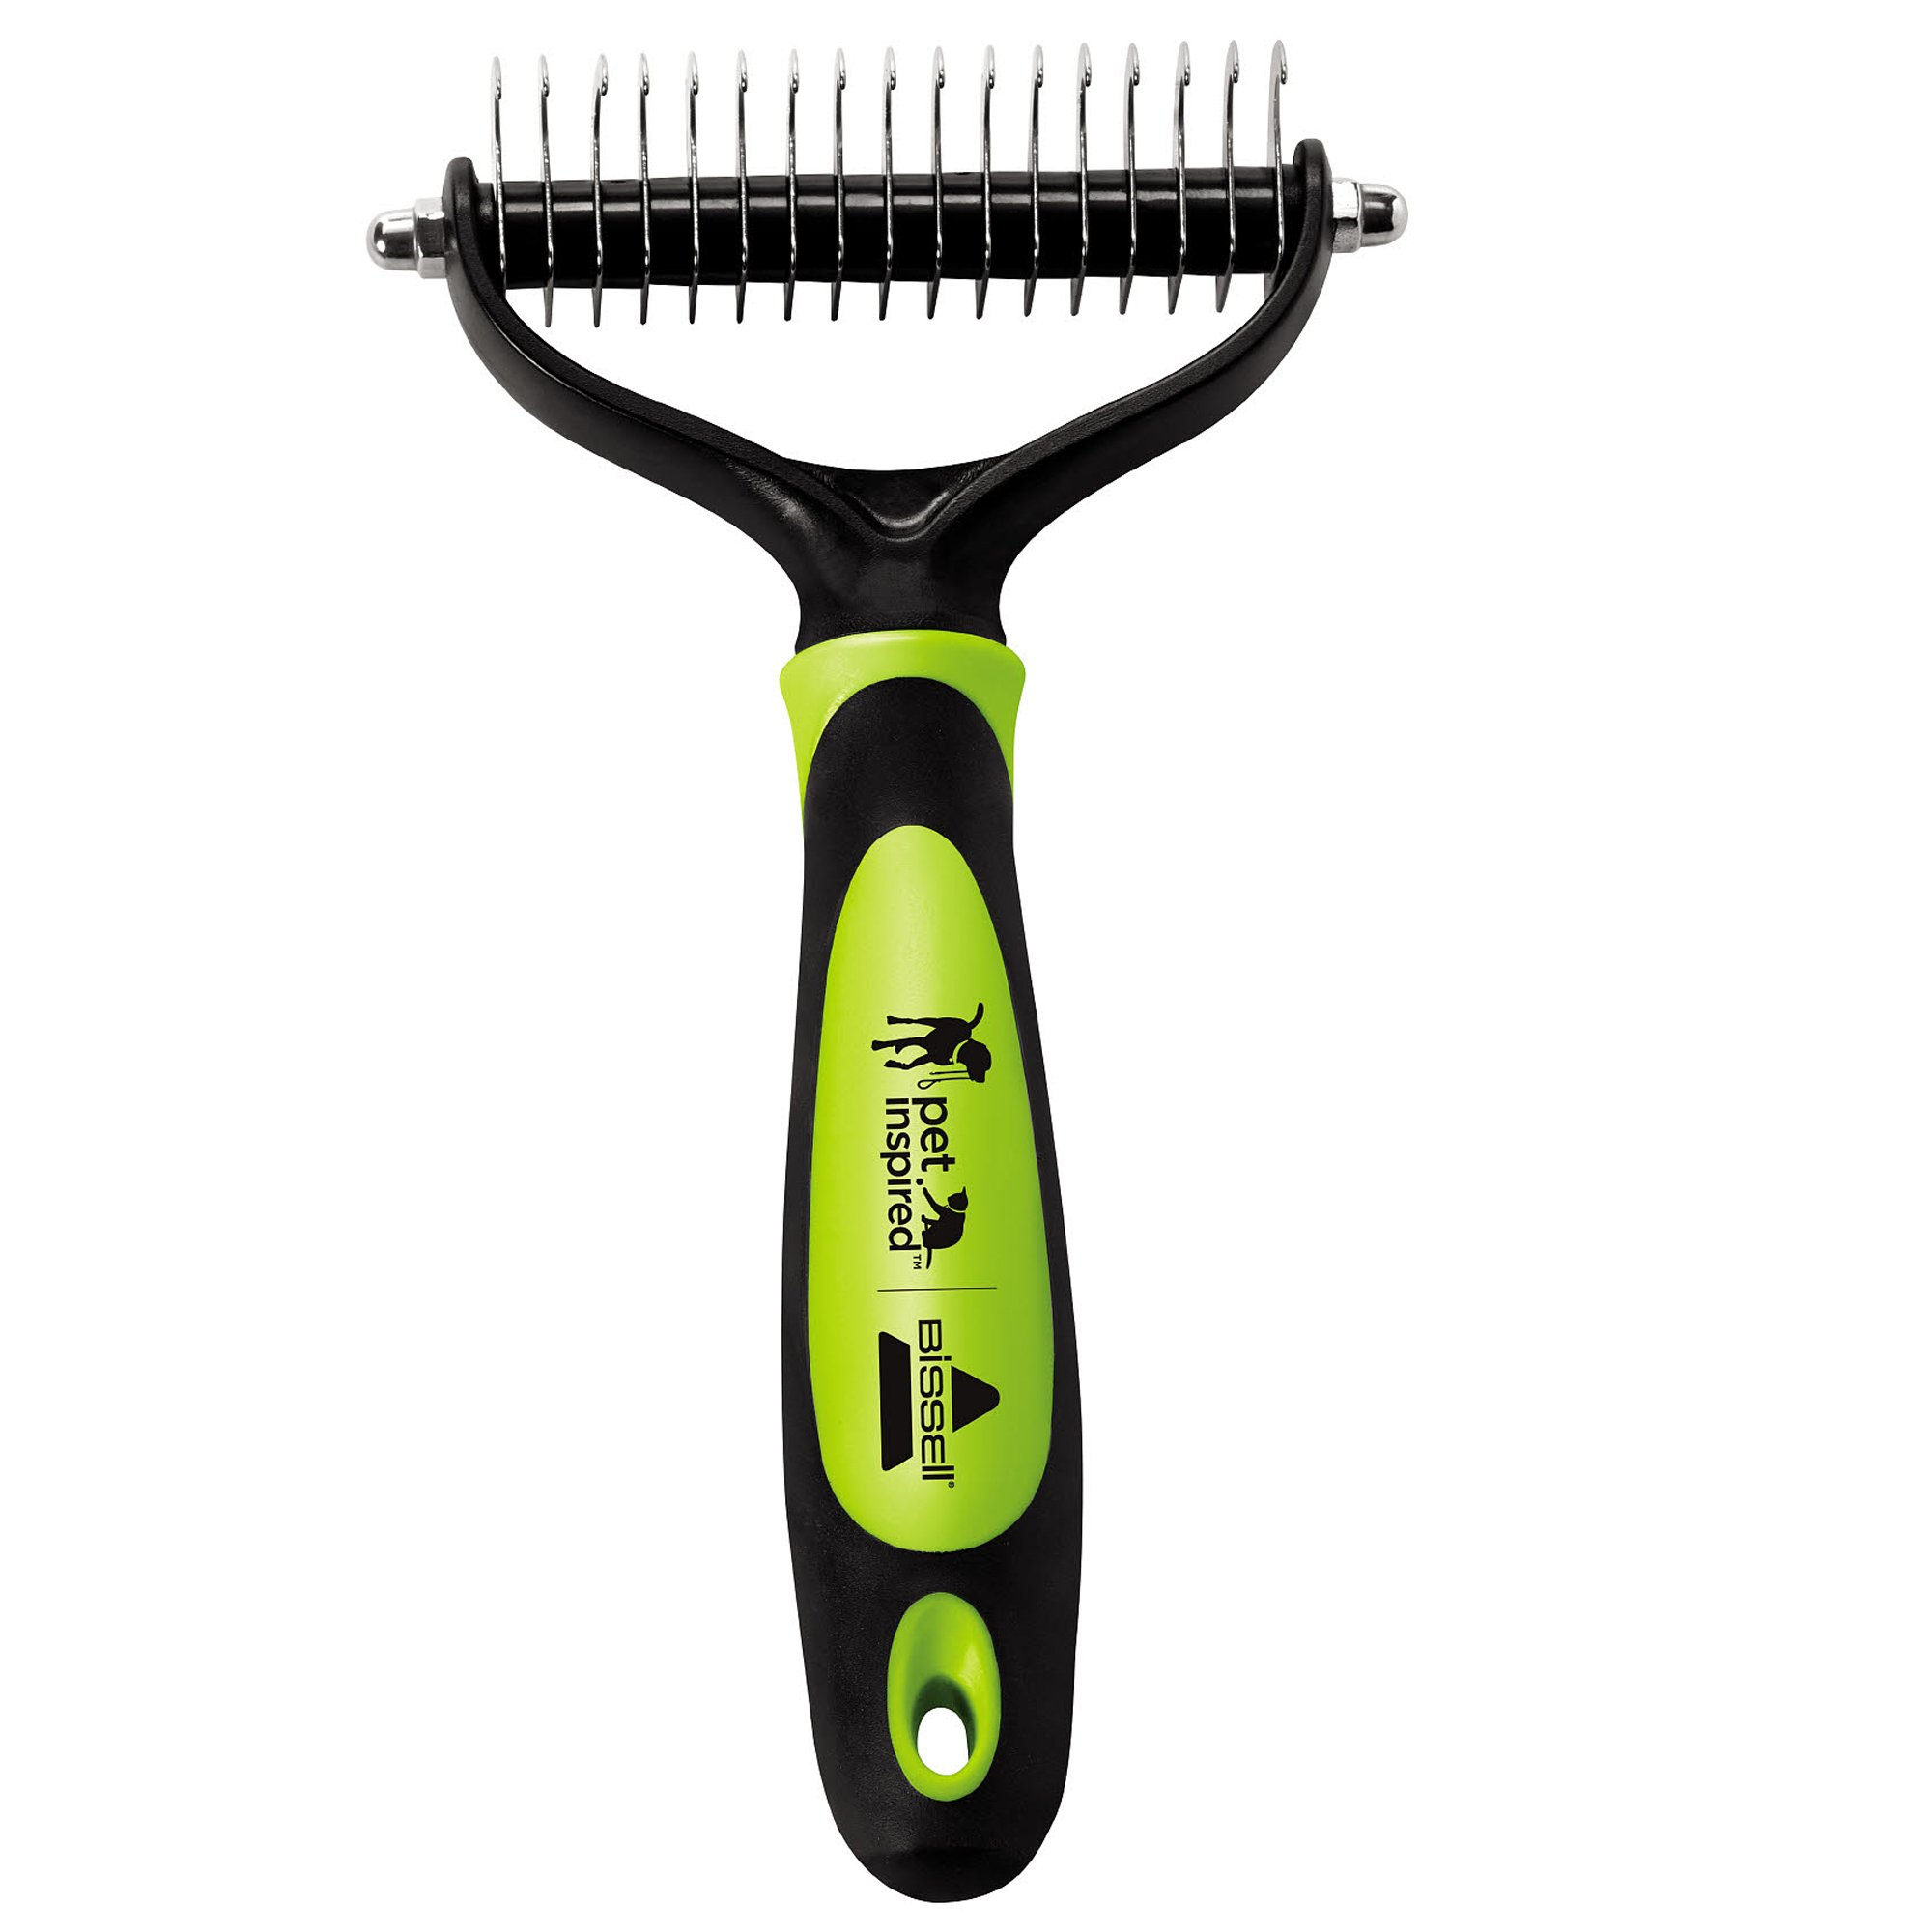 BISSELL FURGET IT Cat and Dog Grooming Brush with Shedding and Dematting, 2064A by Bissell